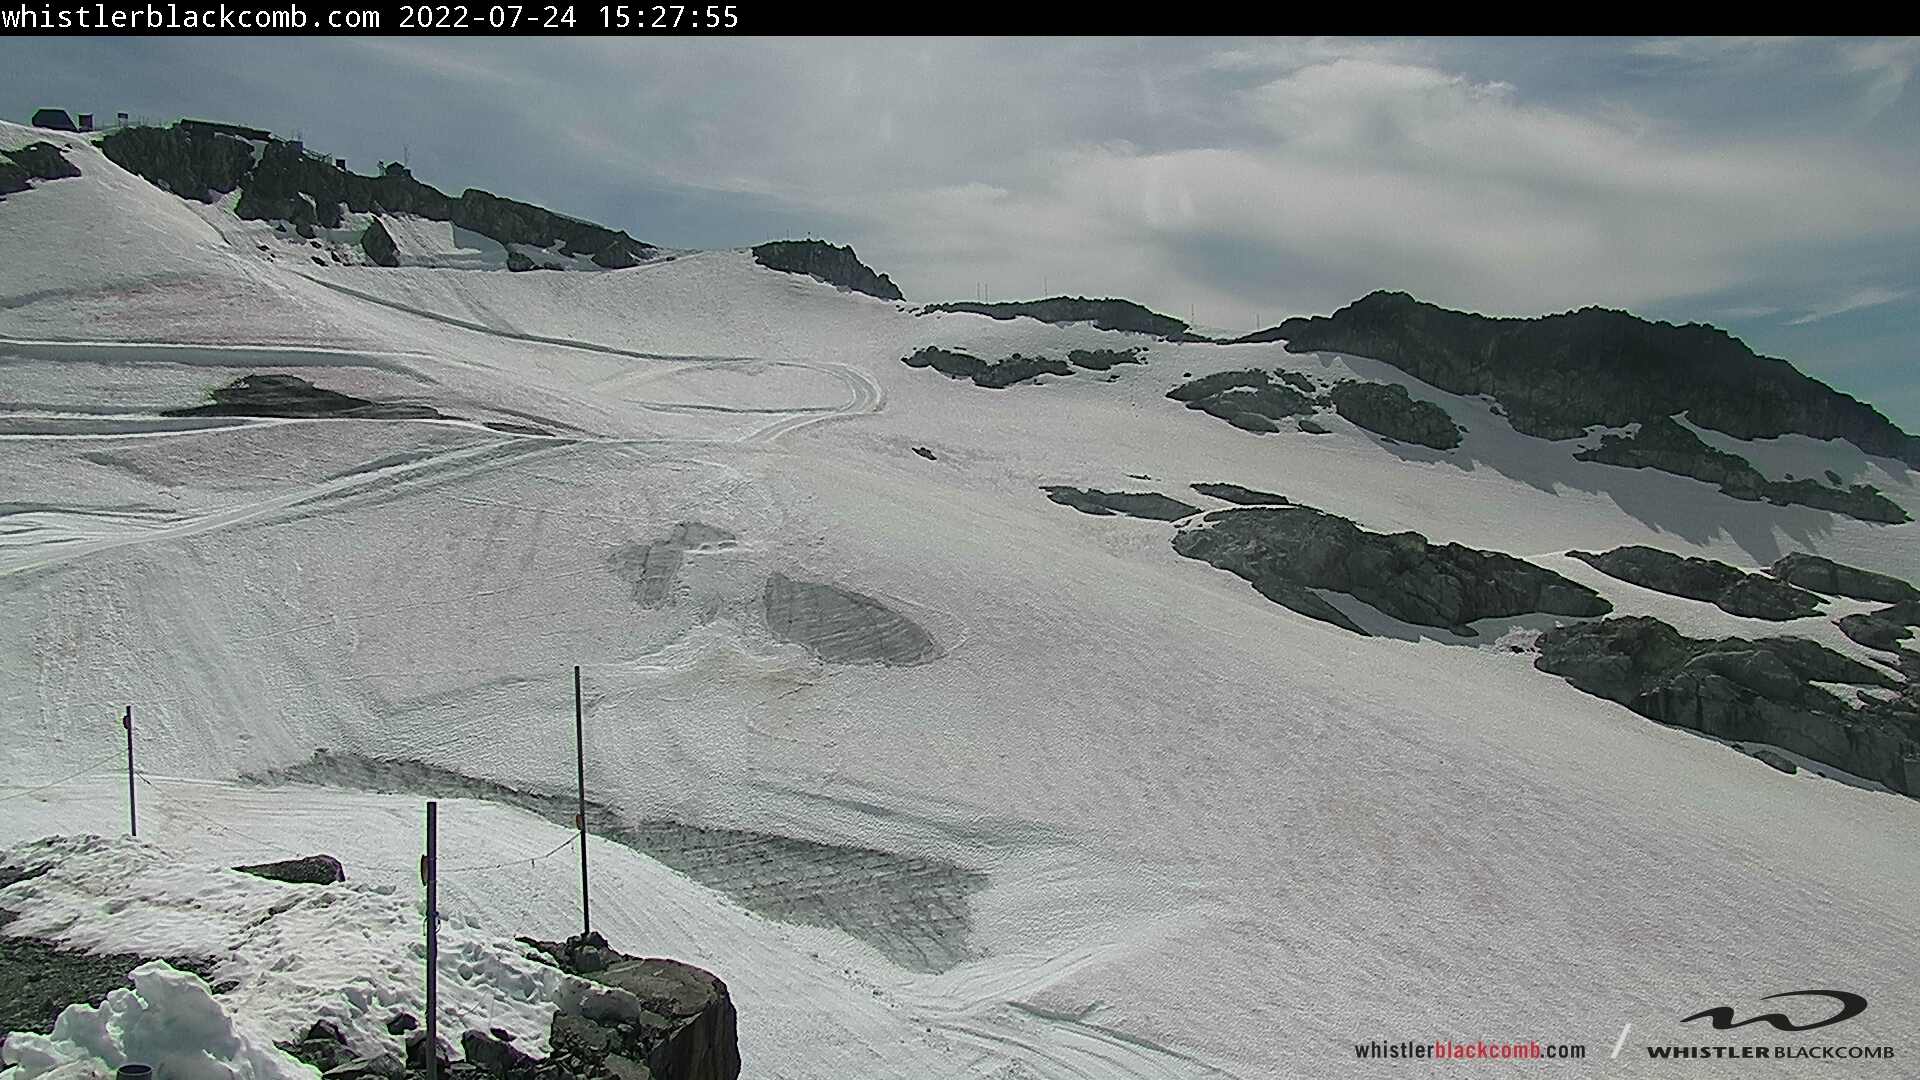 Whistler Blackcomb, Horstman Glacier - Top